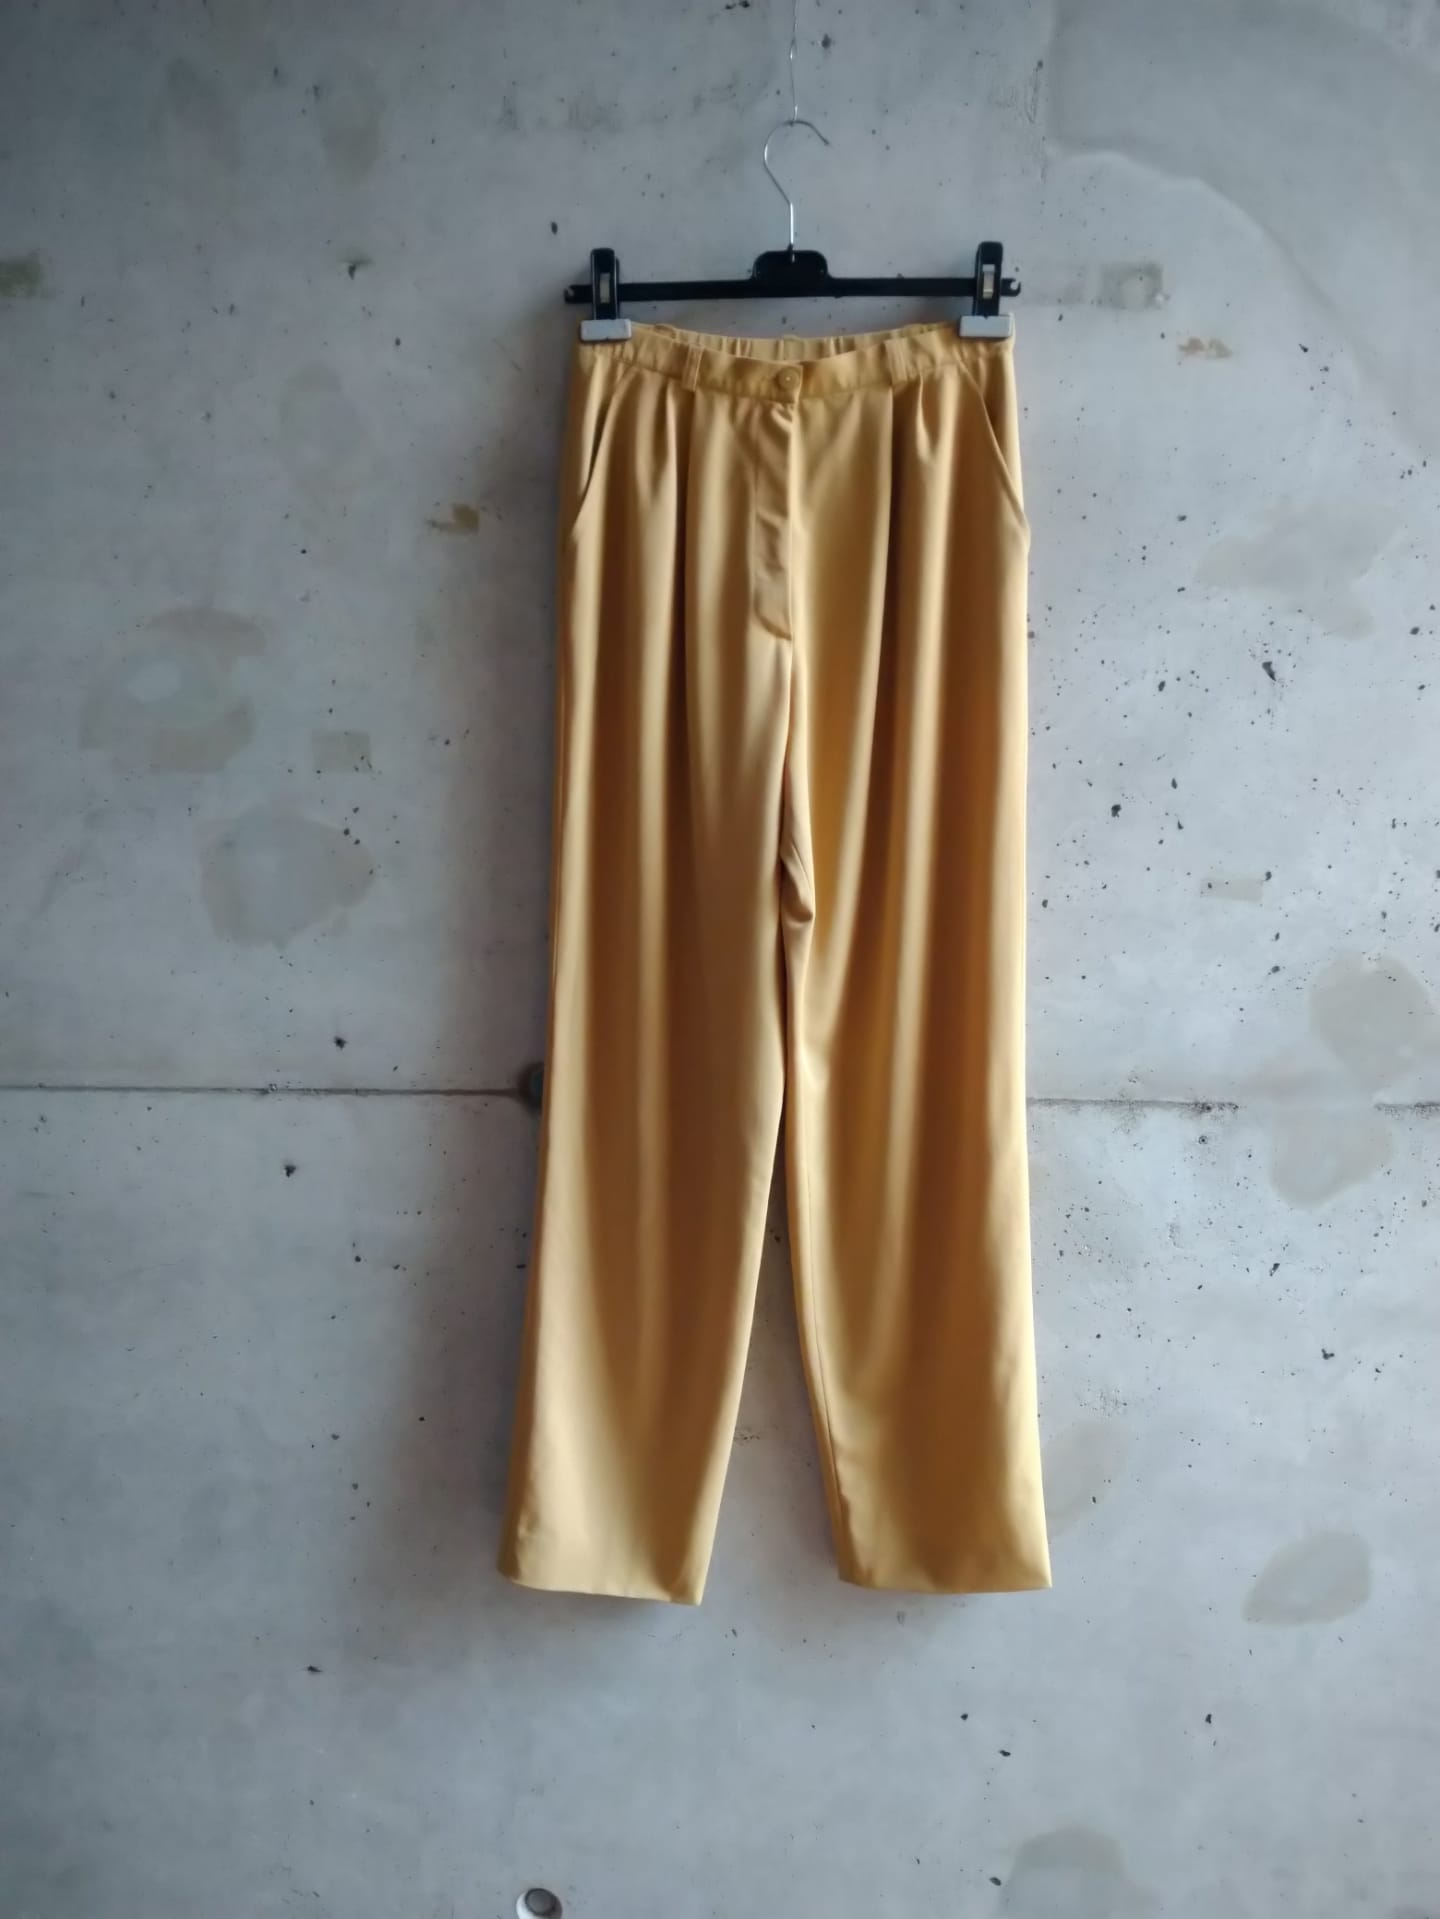 Yves Saint Laurent sand trousers